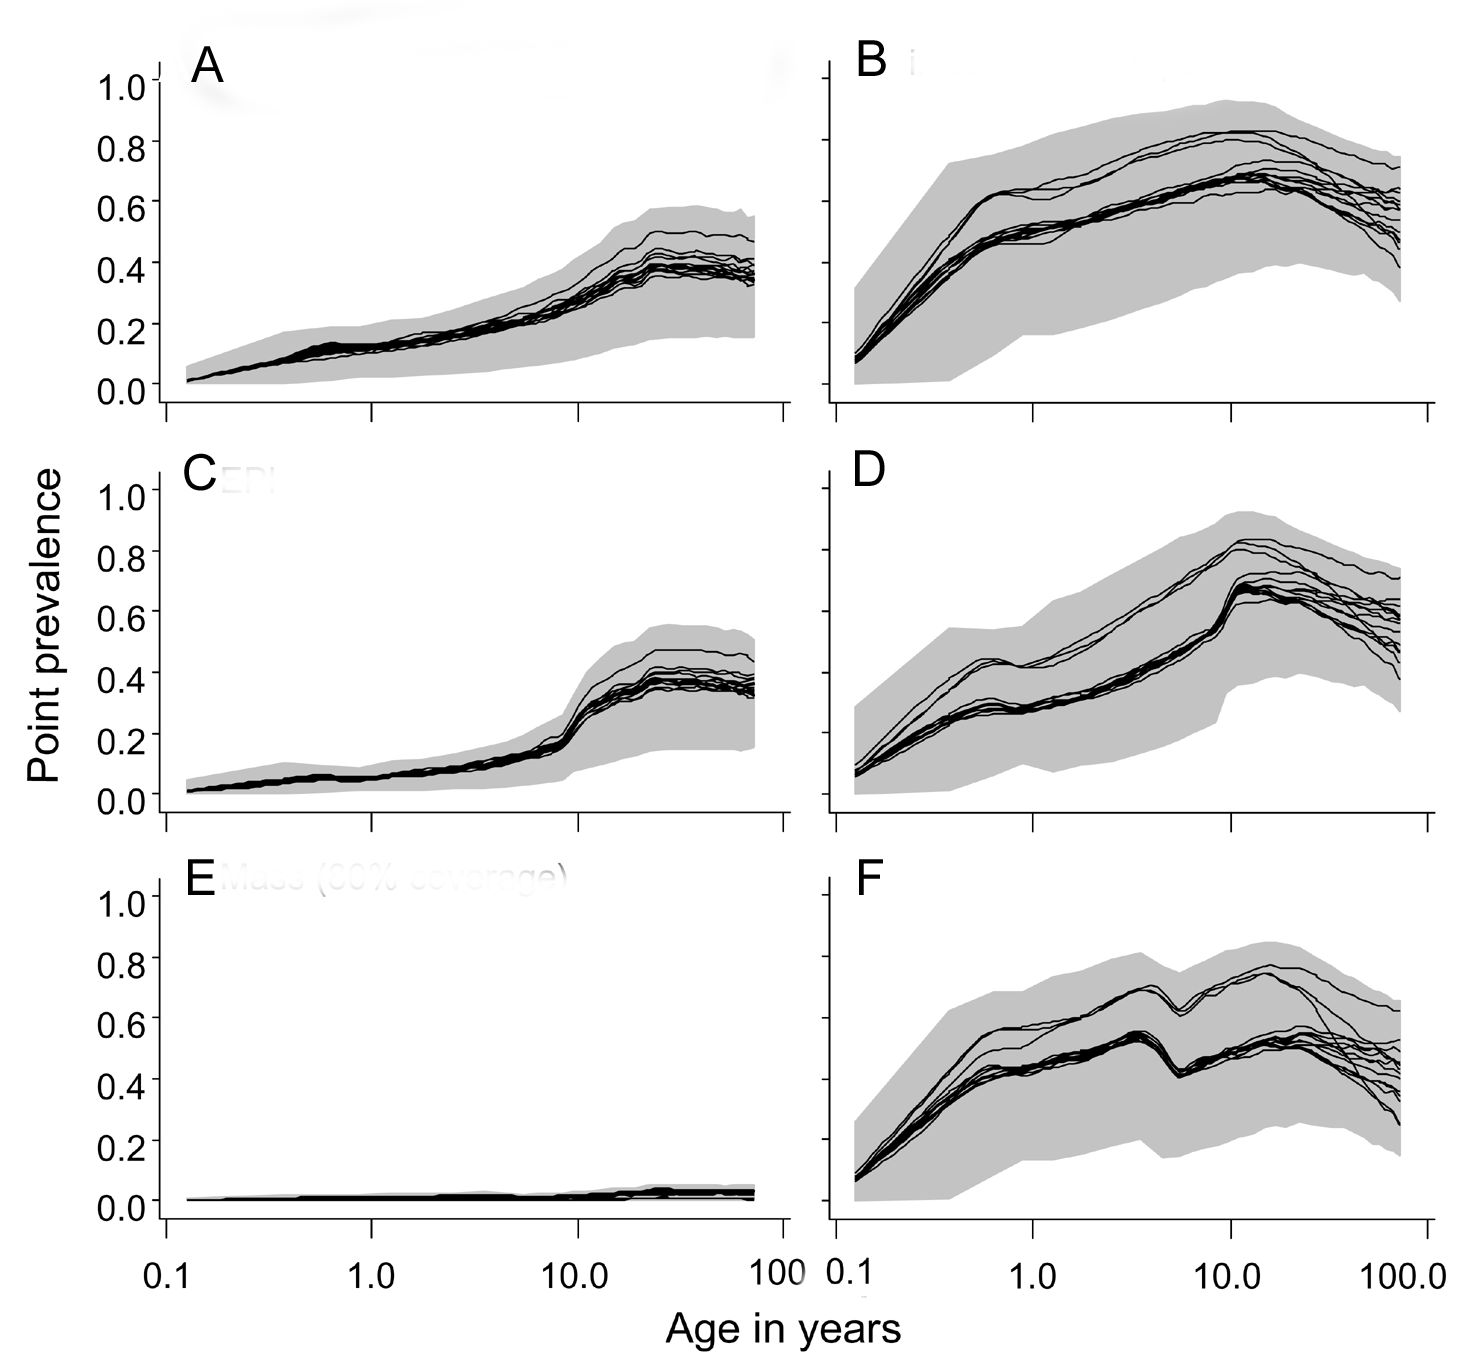 Age prevalence curves during the tenth year of follow-up.